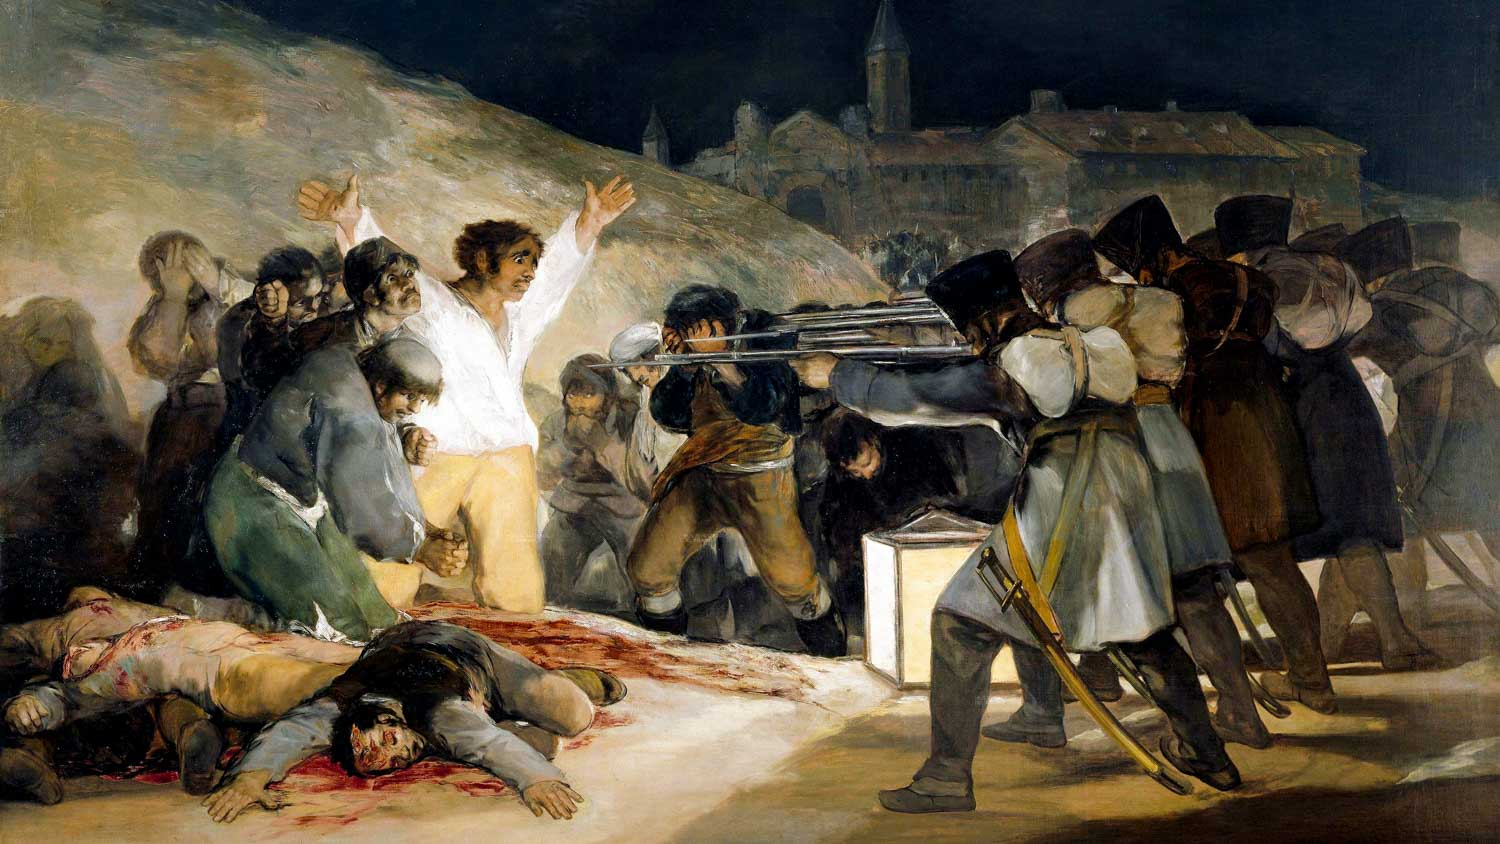 The Third of May 1808, Francisco Goya